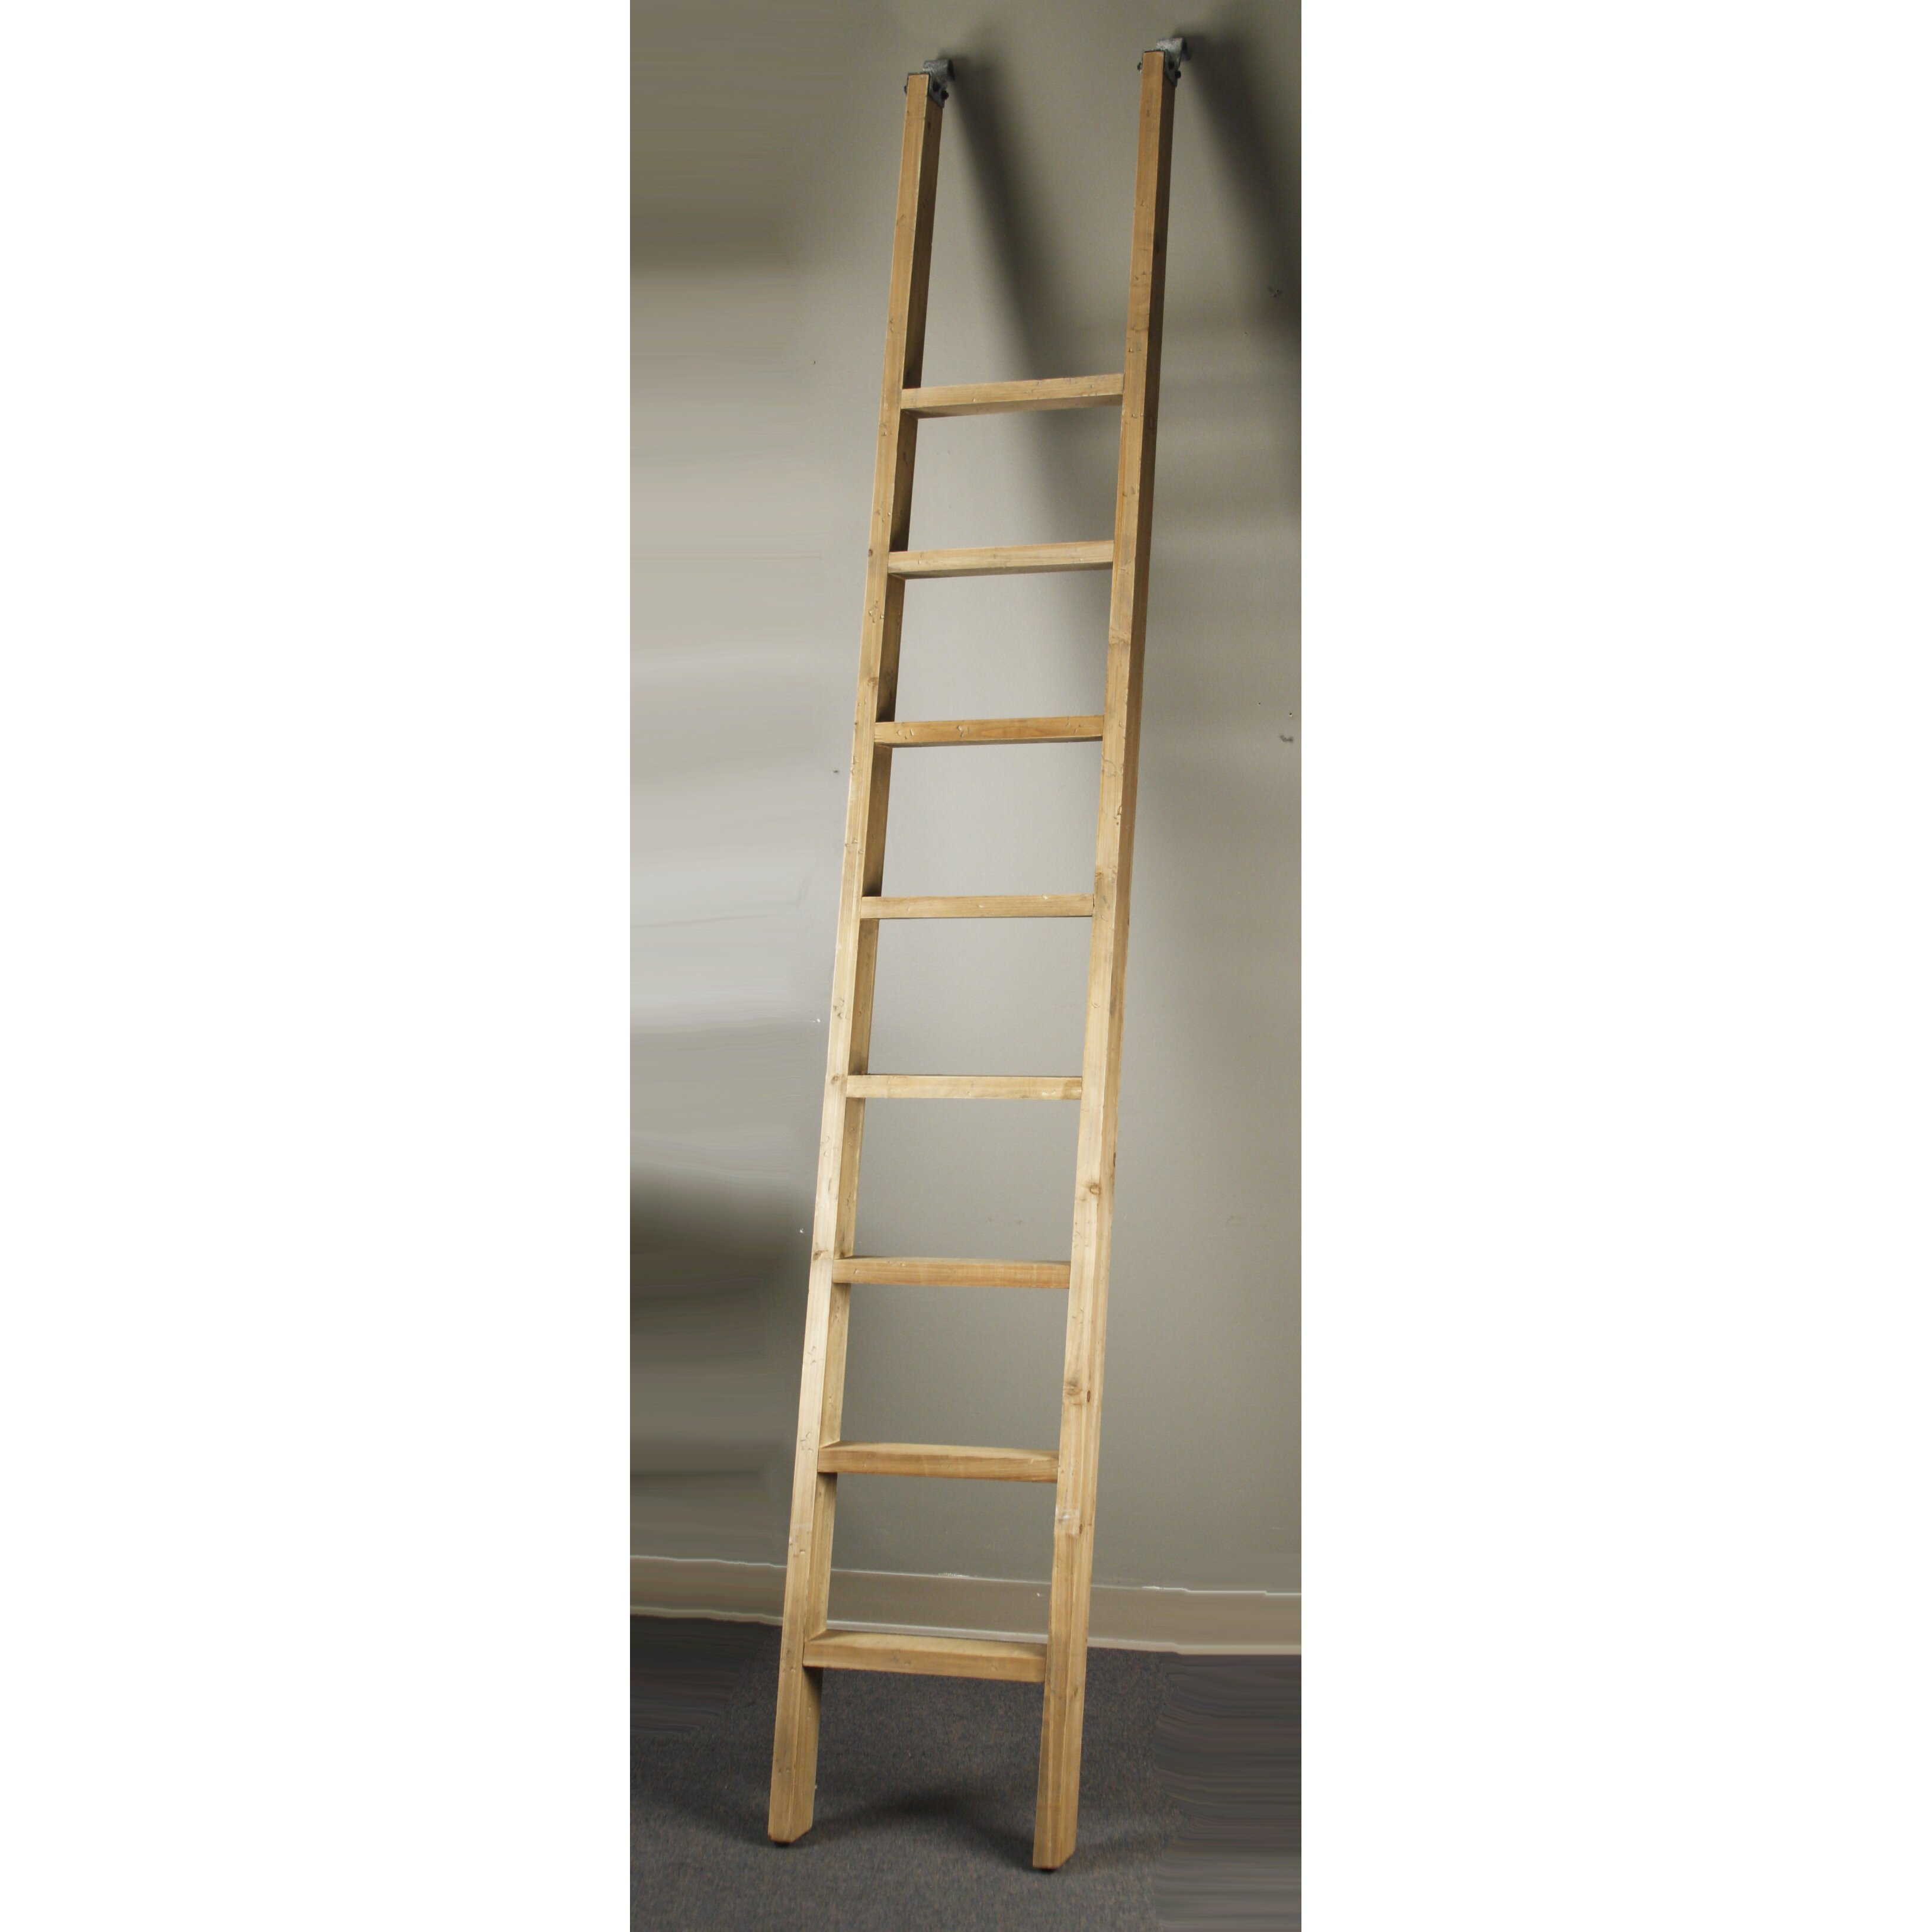 Velma 9 ft Recycled Pine Wood Straight Ladder